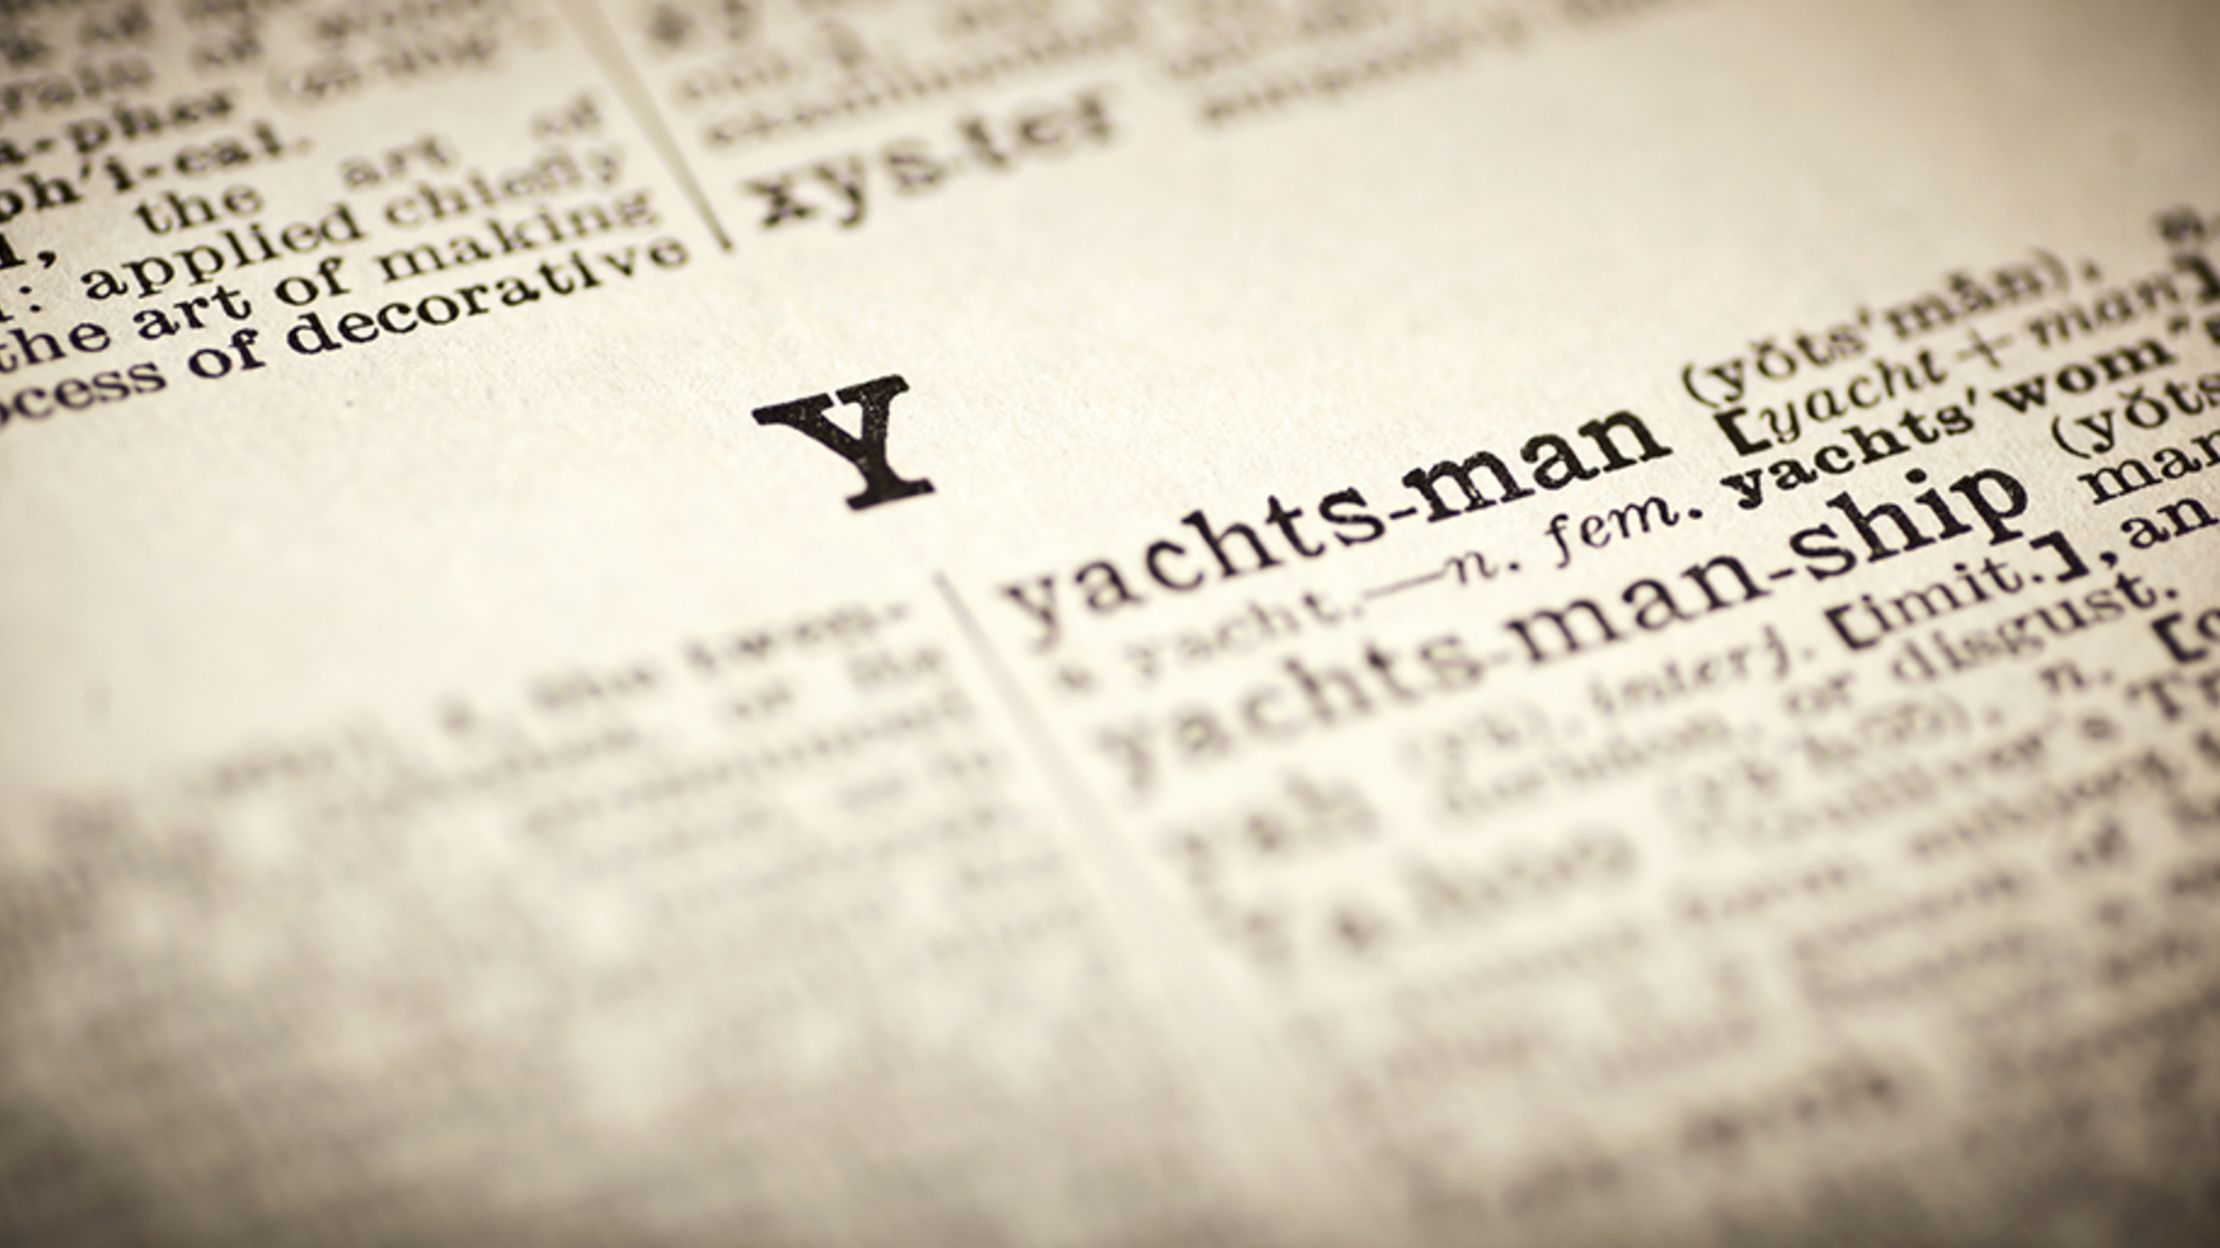 20 Useful Y Words To Add To Your Vocabulary   Mental Floss